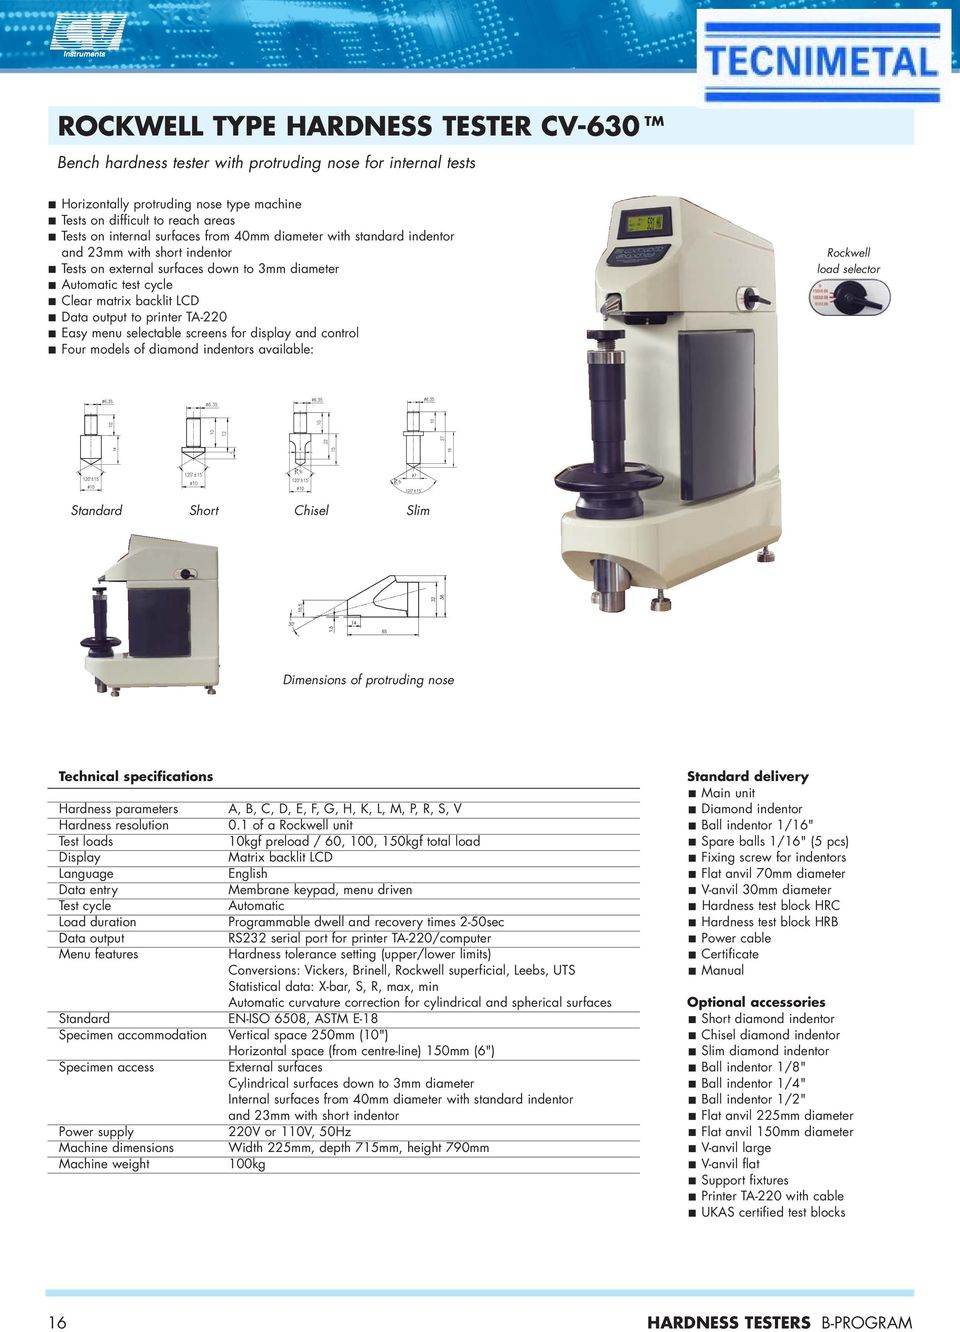 menu selectable screens for display and control Four models of diamond indentors available: Rockwell load selector Standard Short Chisel Slim Dimensions of protruding nose Hardness parameters Test